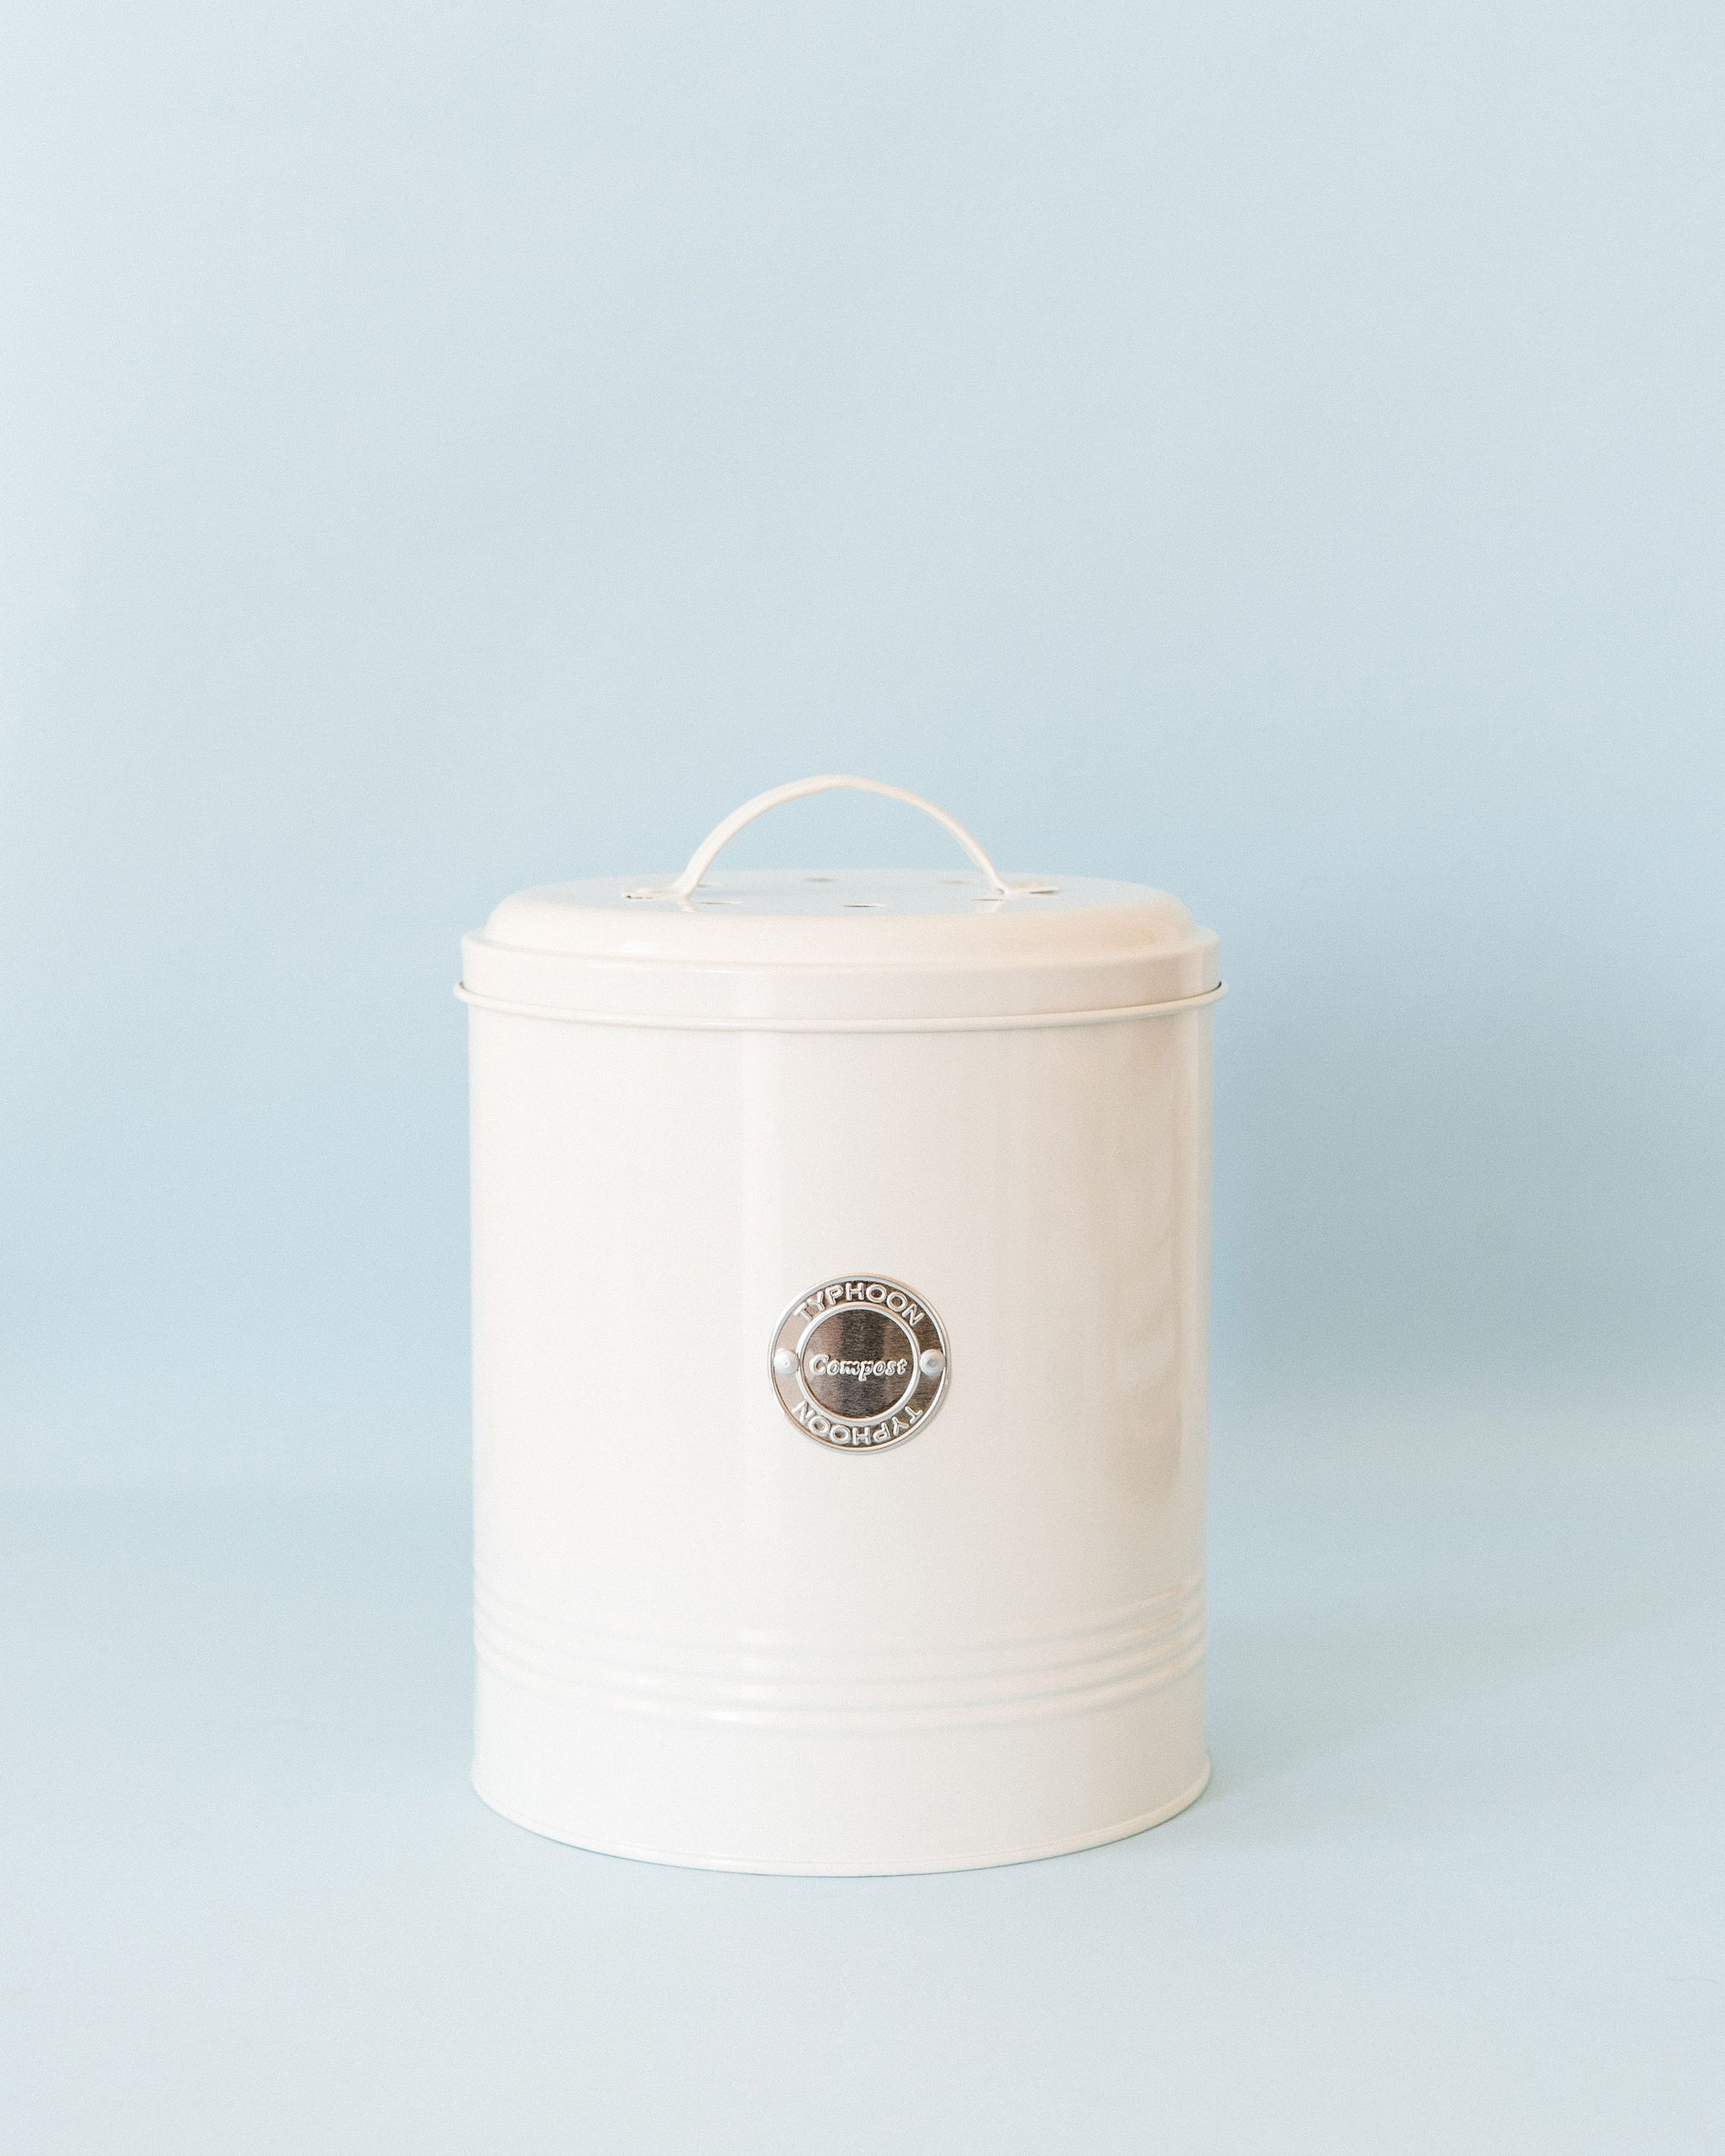 Living Cream Compost Caddy